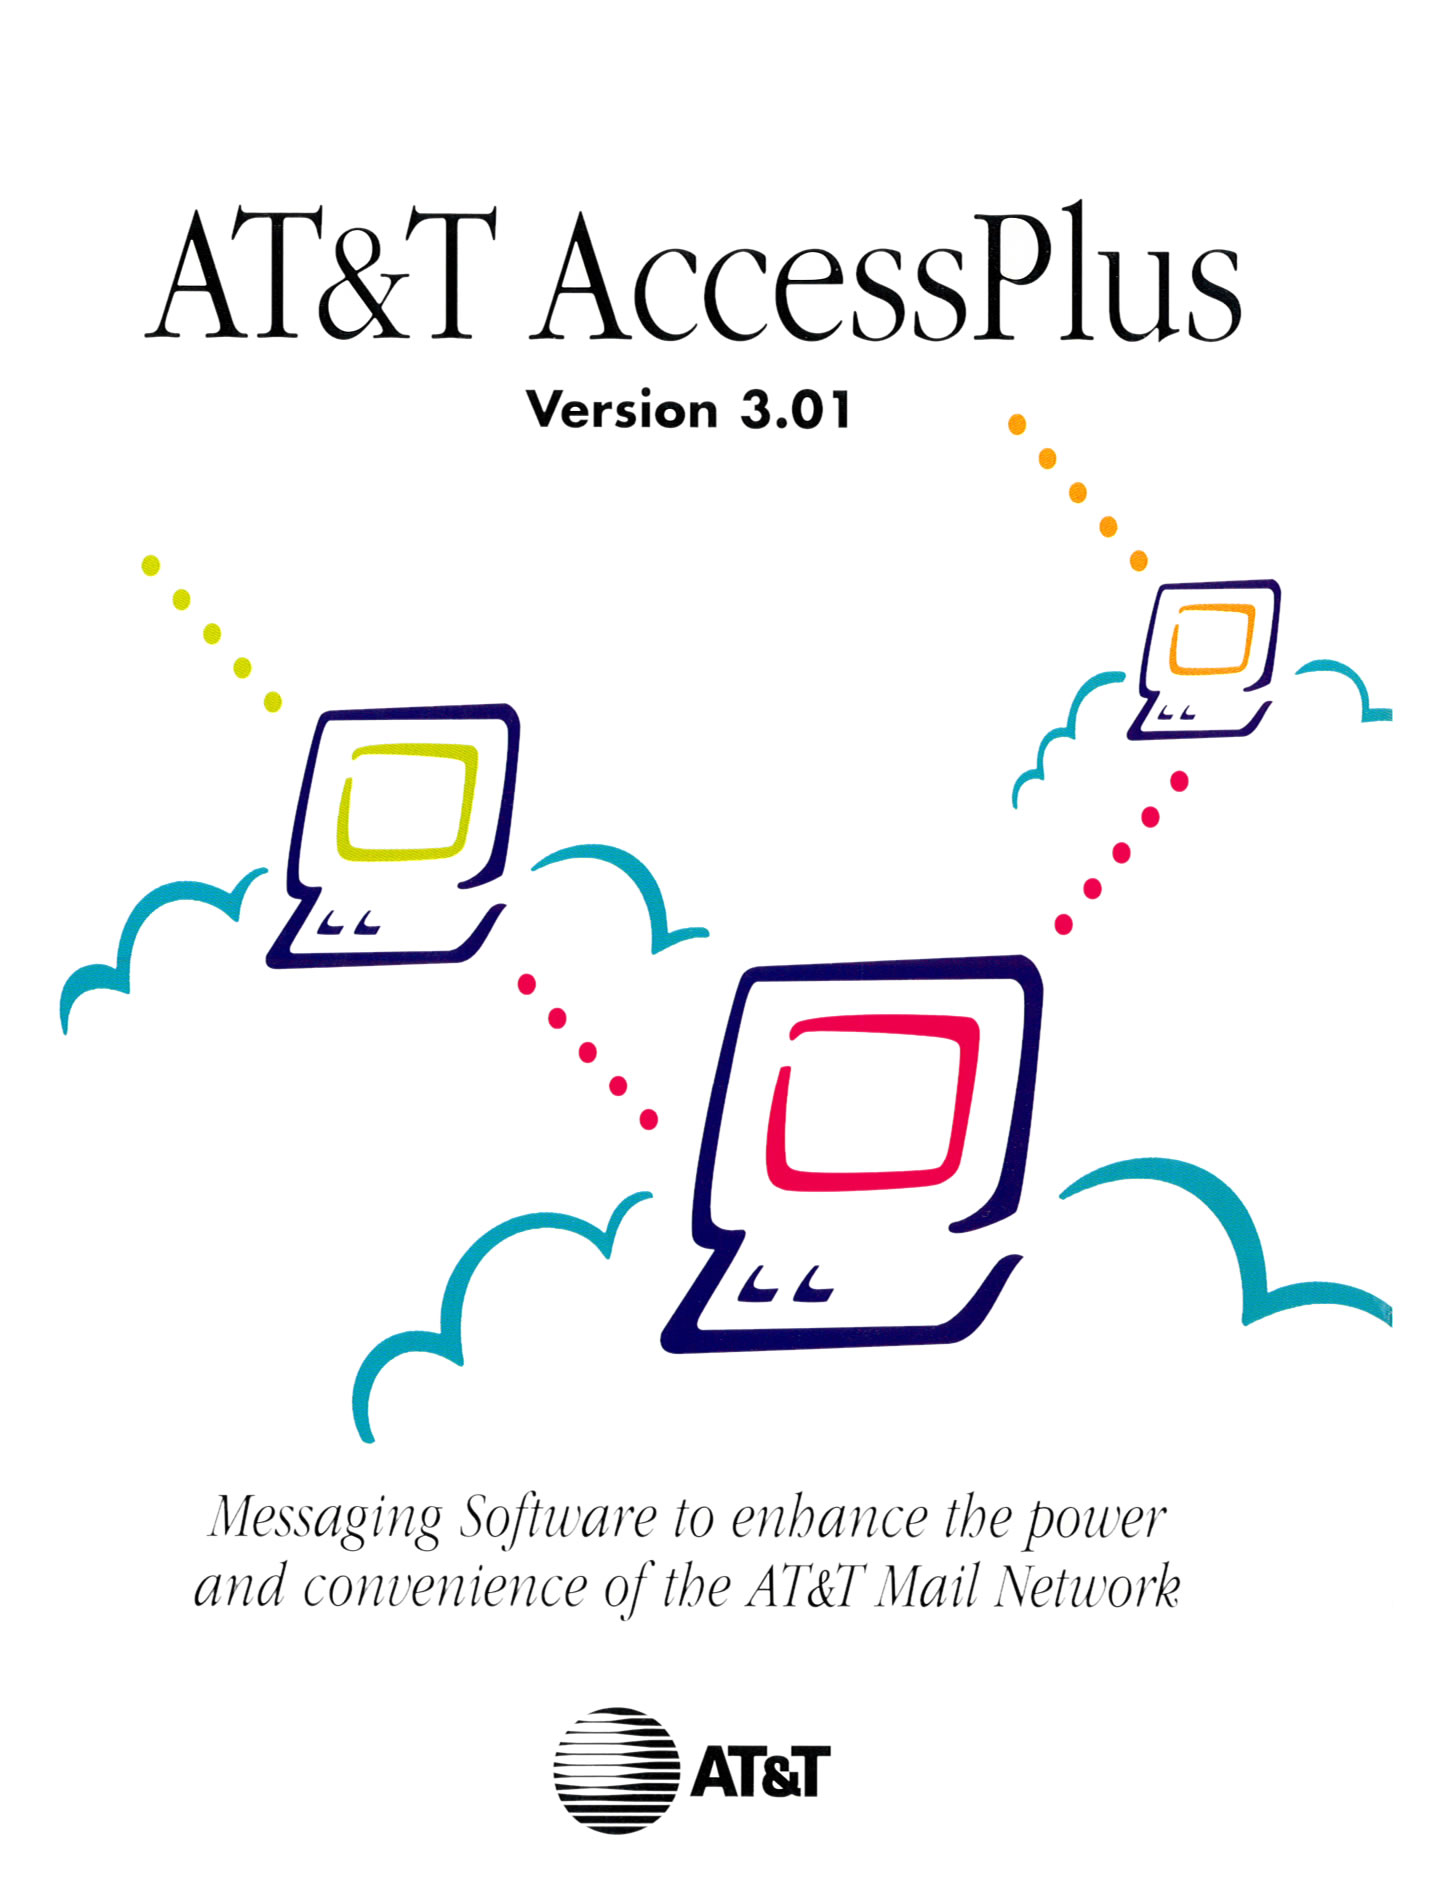 AT&T Access Plus 3.01, Email System, released by AT&T (Nov. 28, 1995). Cover: AT&T.